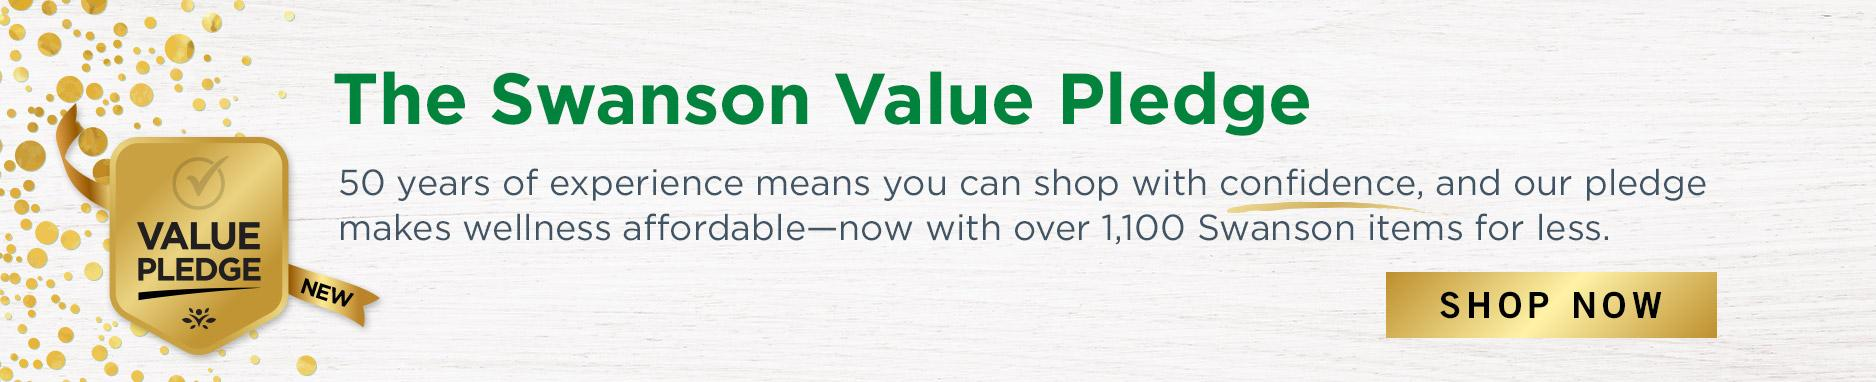 VIew Swanson's Value Pledge